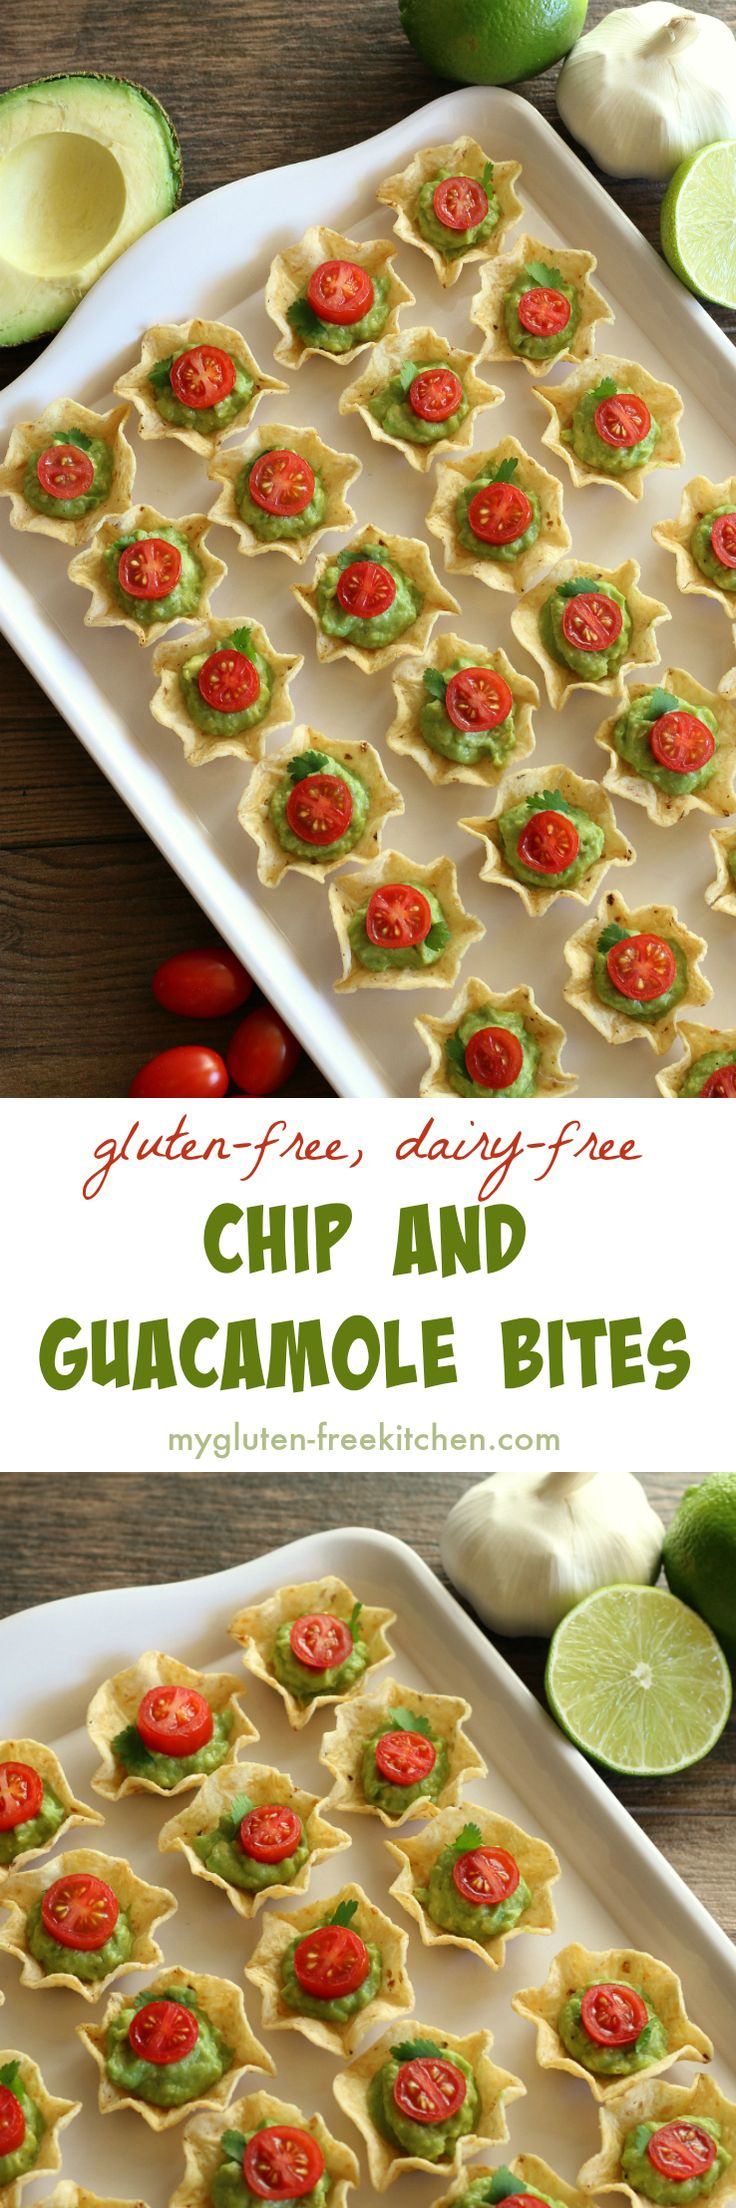 Appetizer Ideas For Christmas Party Part - 17: Chip And Guacamole Bites Gluten-free Appetizer Recipe. Dairy-free Too!